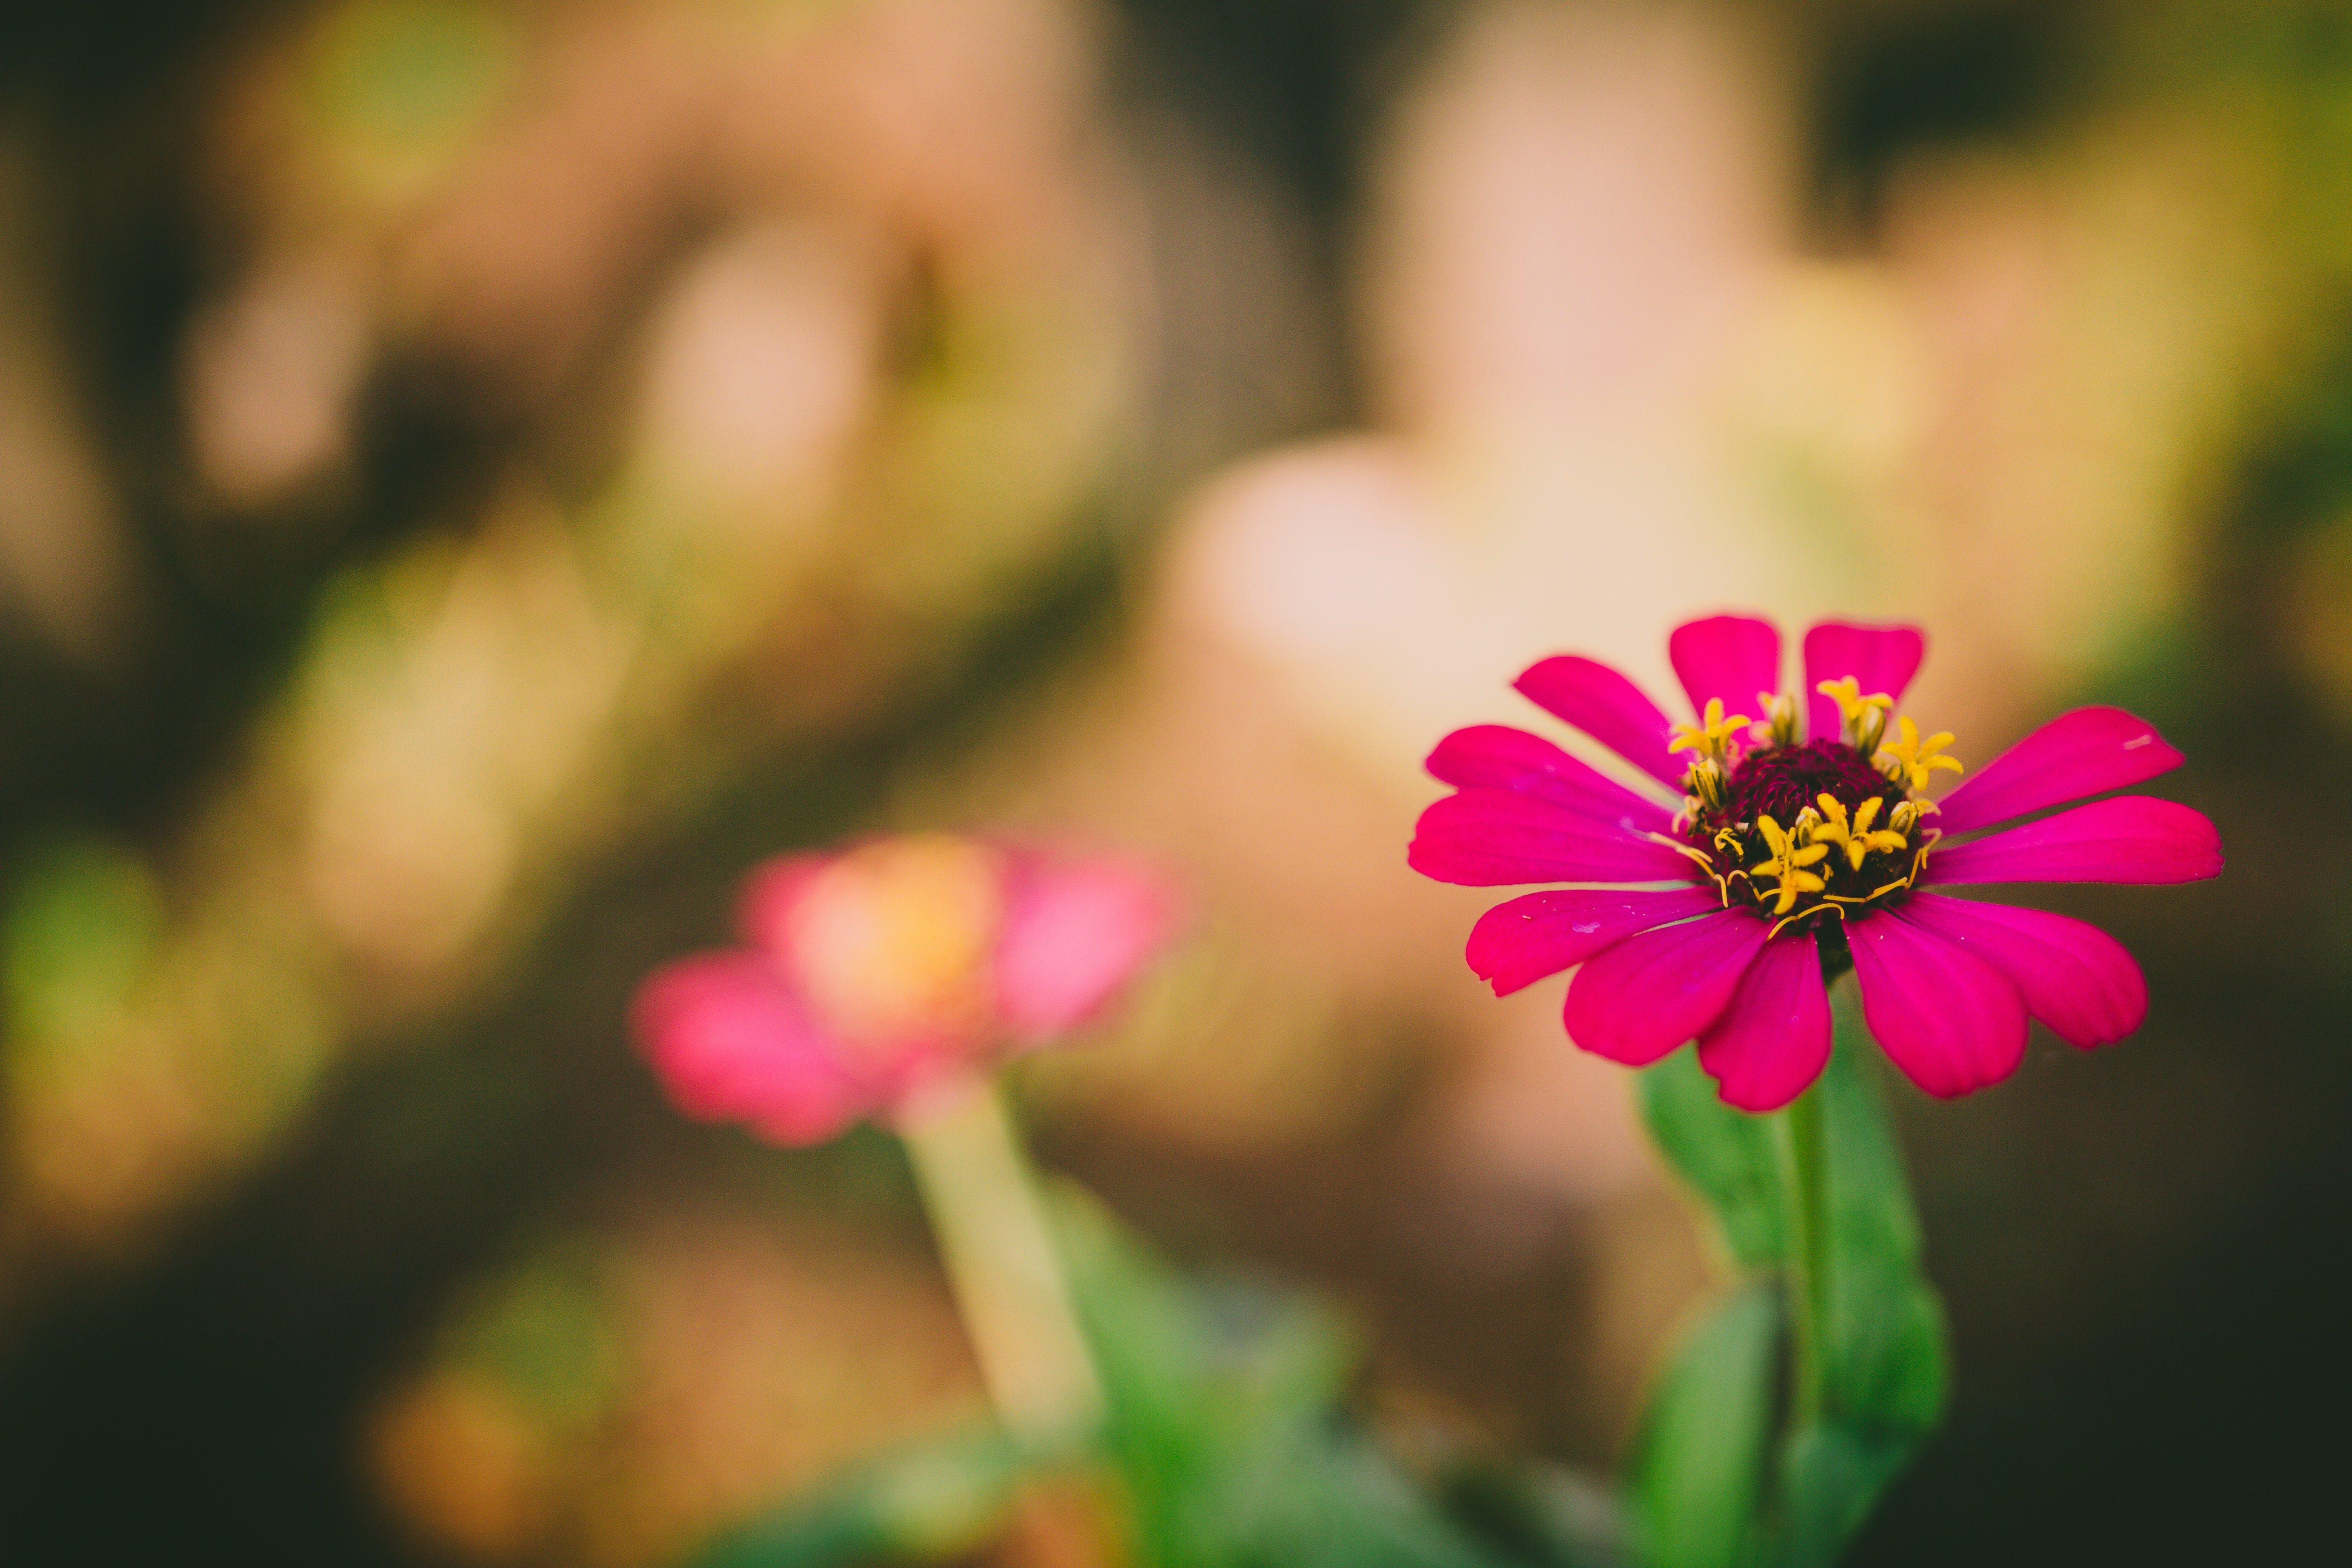 Selective Focus Photography Of Yellow Petaled Flower: Selective Focus Photography Of Pink Petaled Flower During